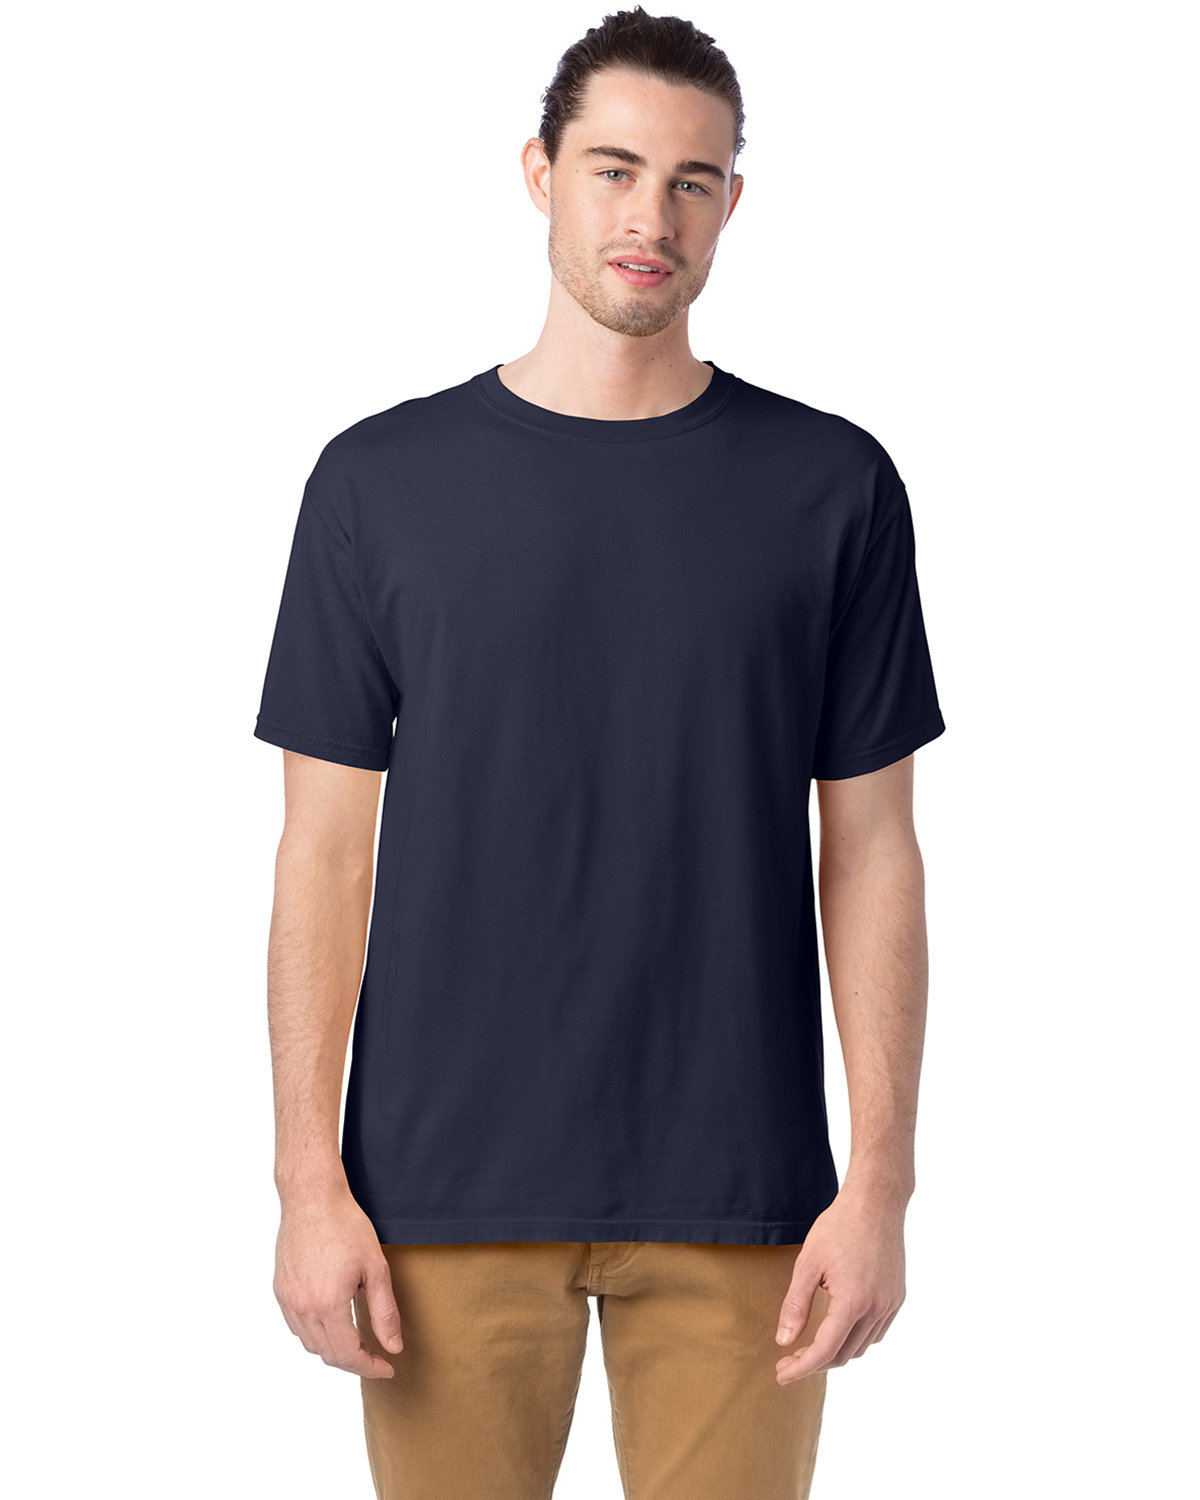 ComfortWash by Hanes Men's 5.5 oz., 100% Ringspun Cotton Garment-Dyed T-Shirt ANCHOR SLATE